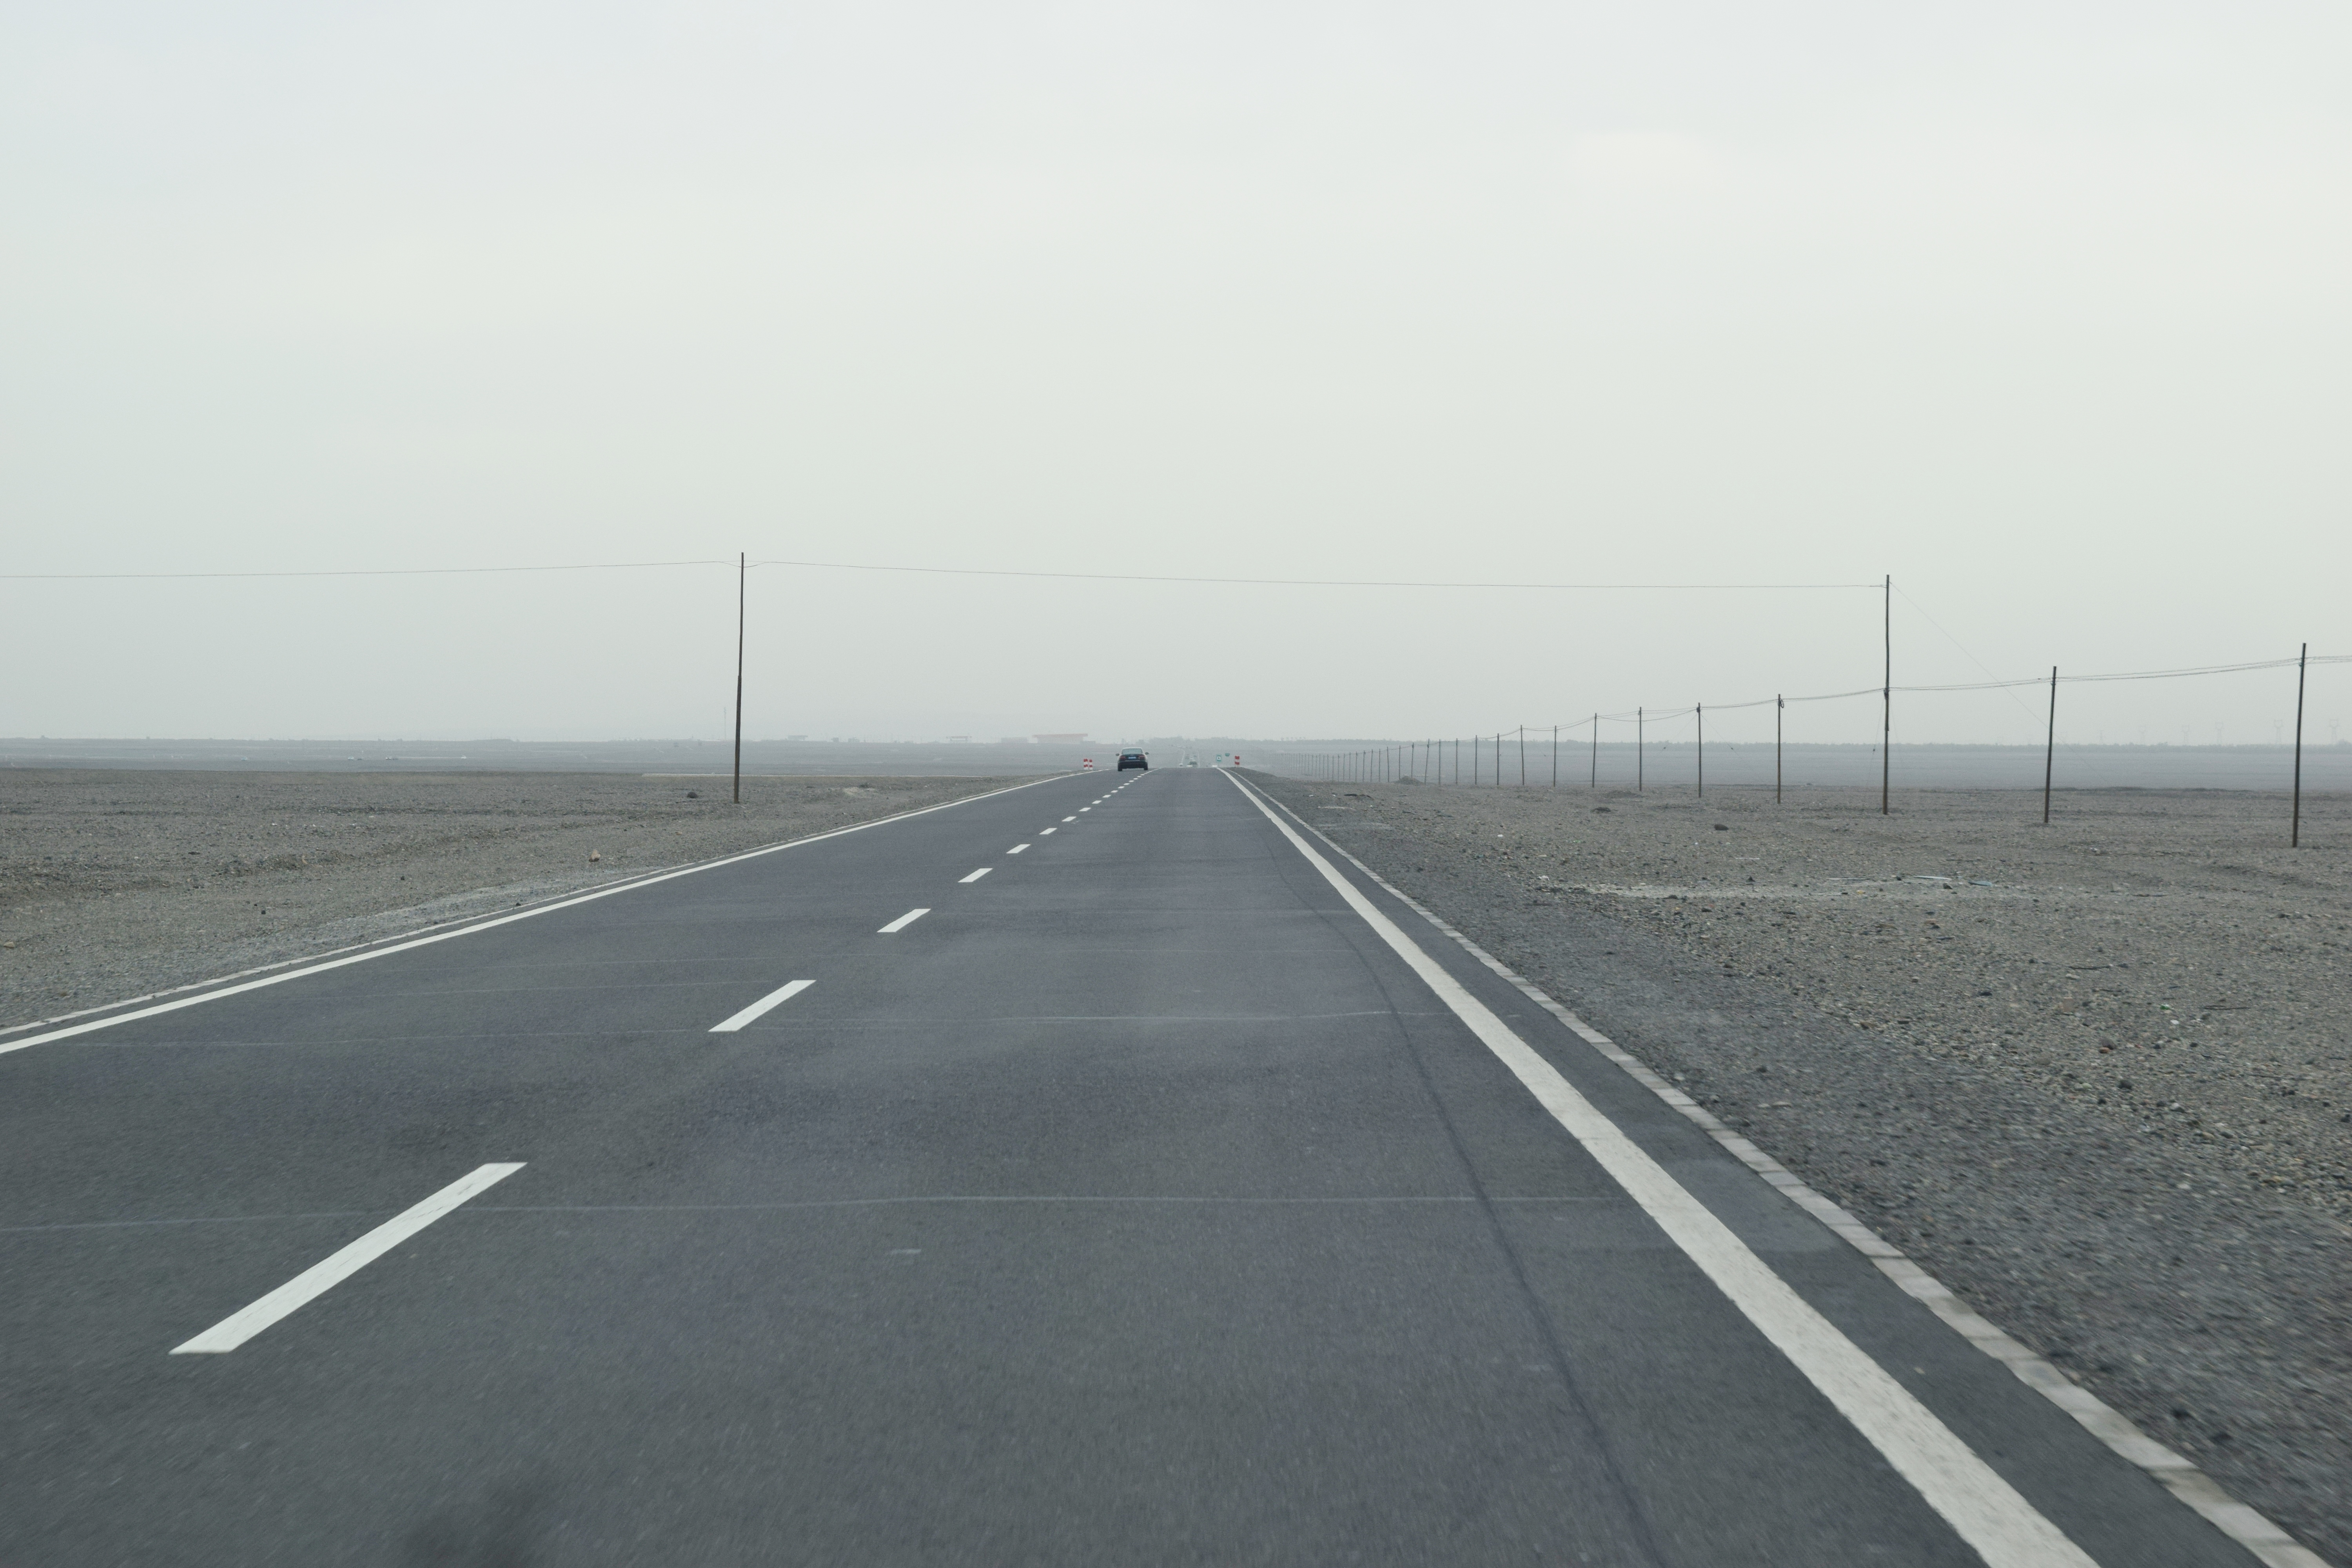 miles and miles of absolute nothingness on both sides of the road but Gobi (戈壁) sand! 寸草不生!